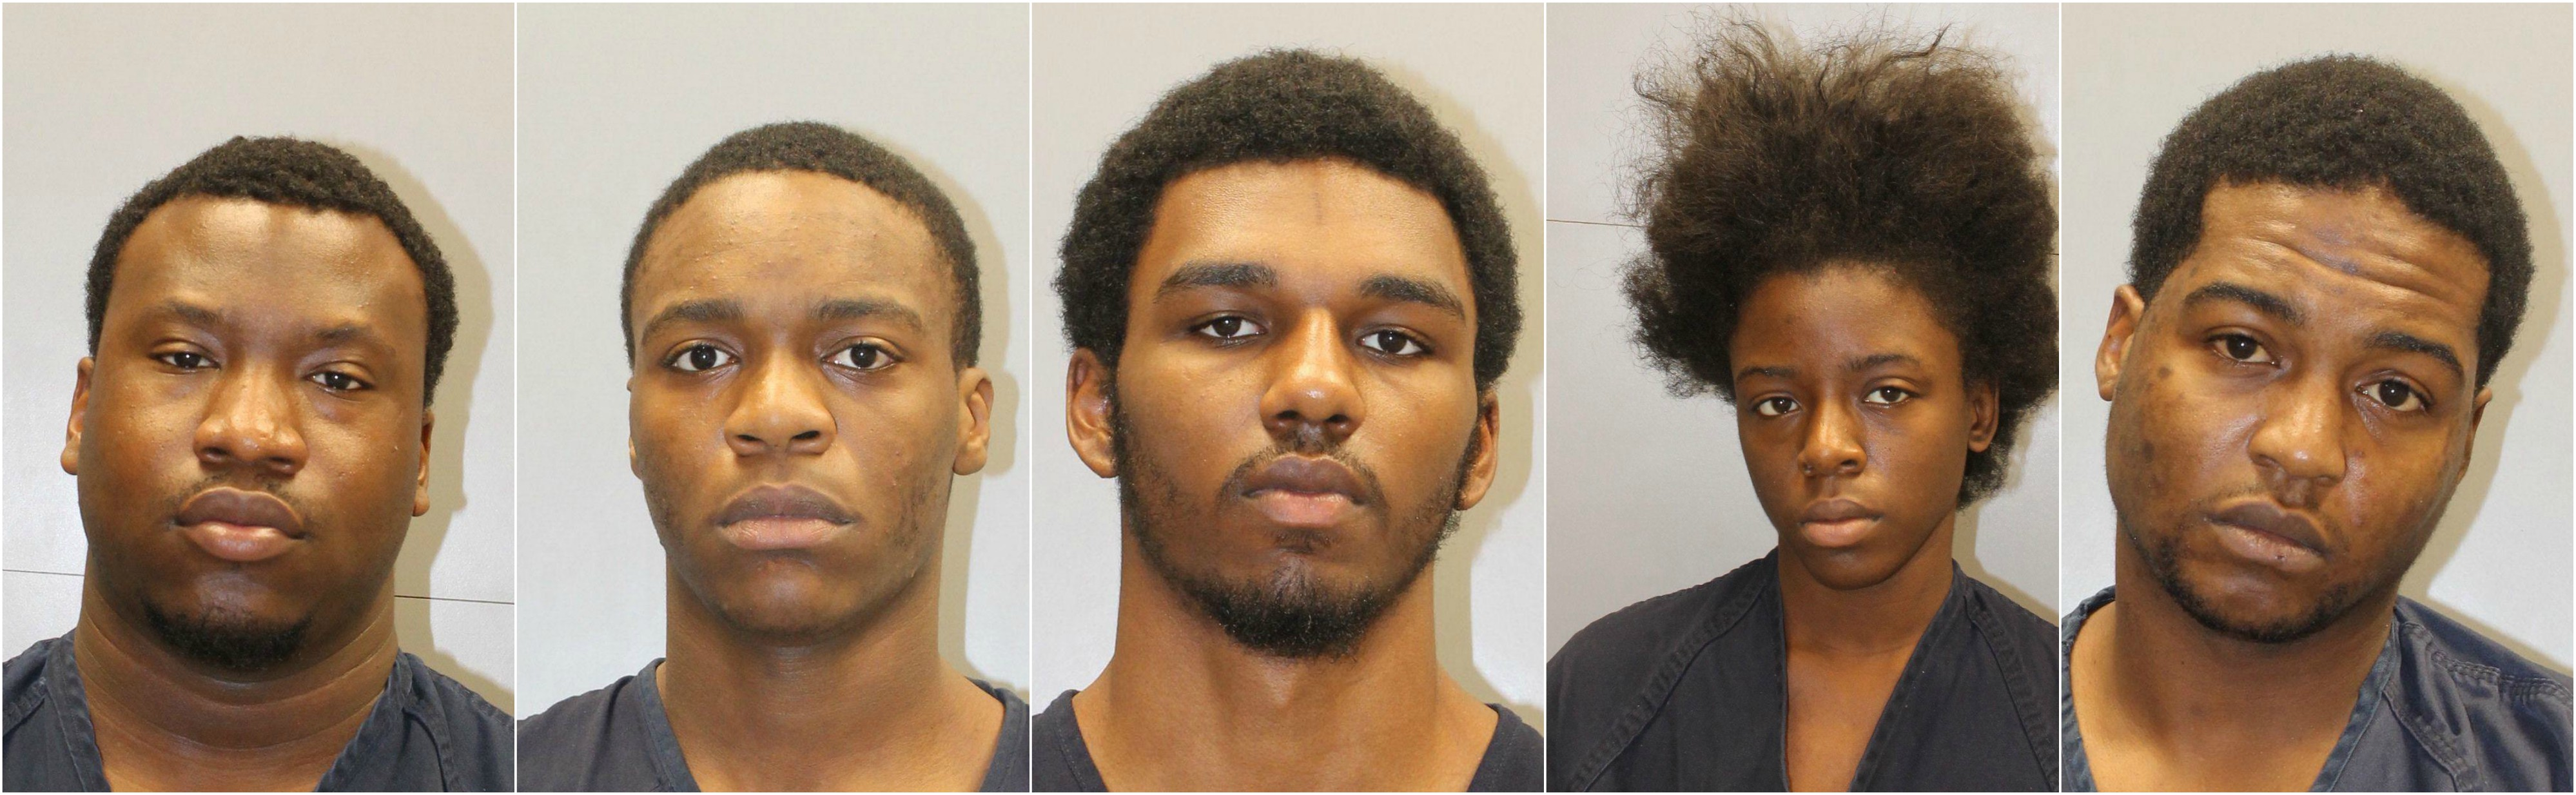 Five arrested for armed robbery and kidnapping.jpg